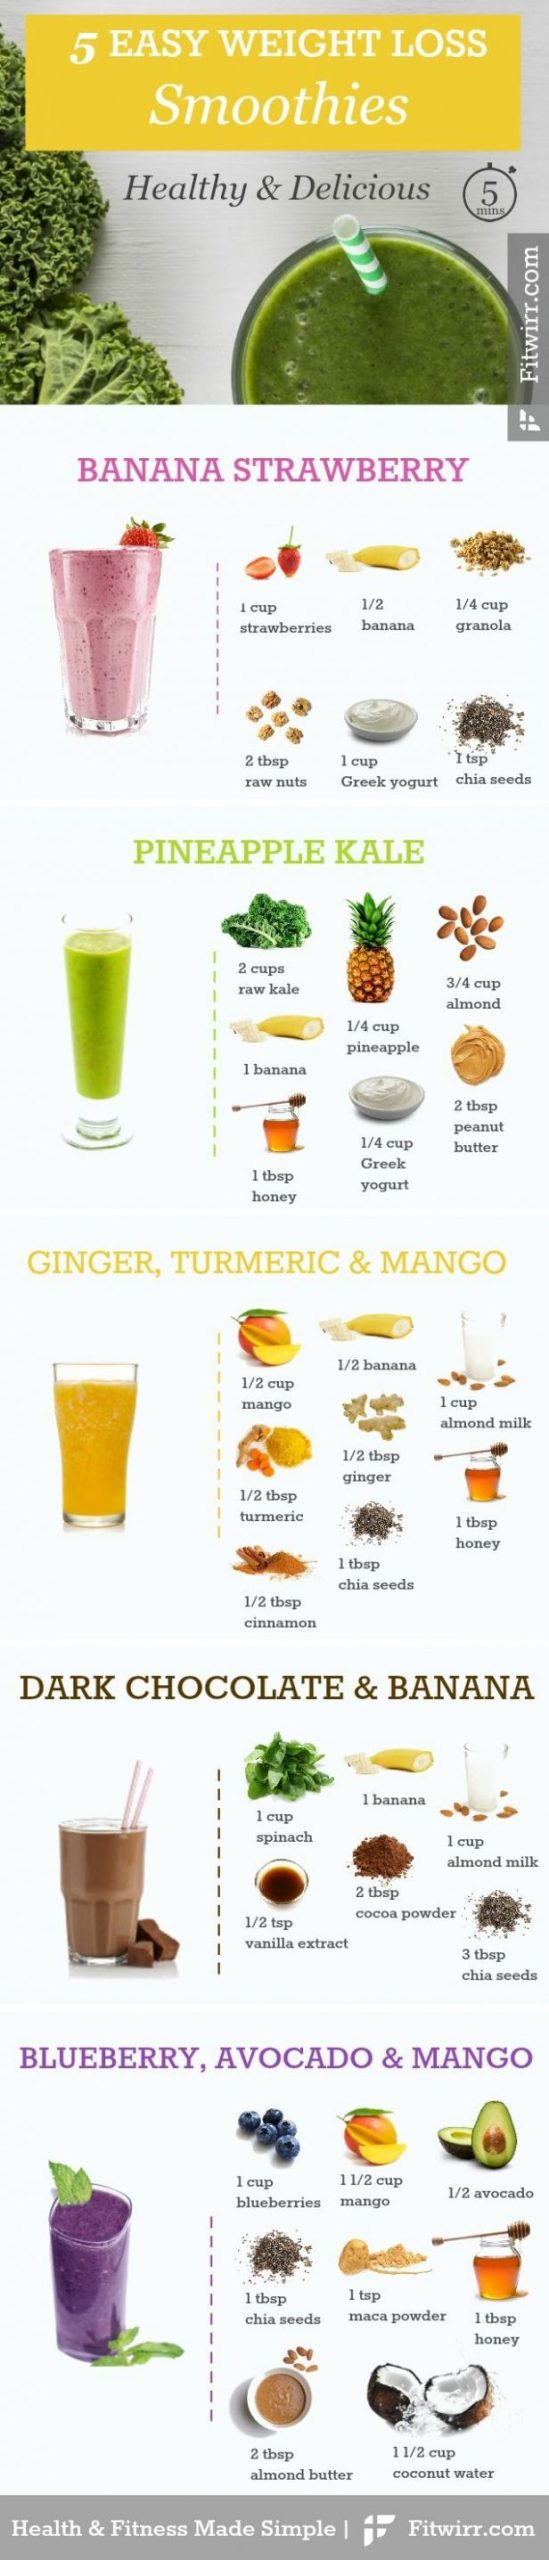 12 Best Smoothie Recipes for Weight Loss | Delicious | Healthy ..